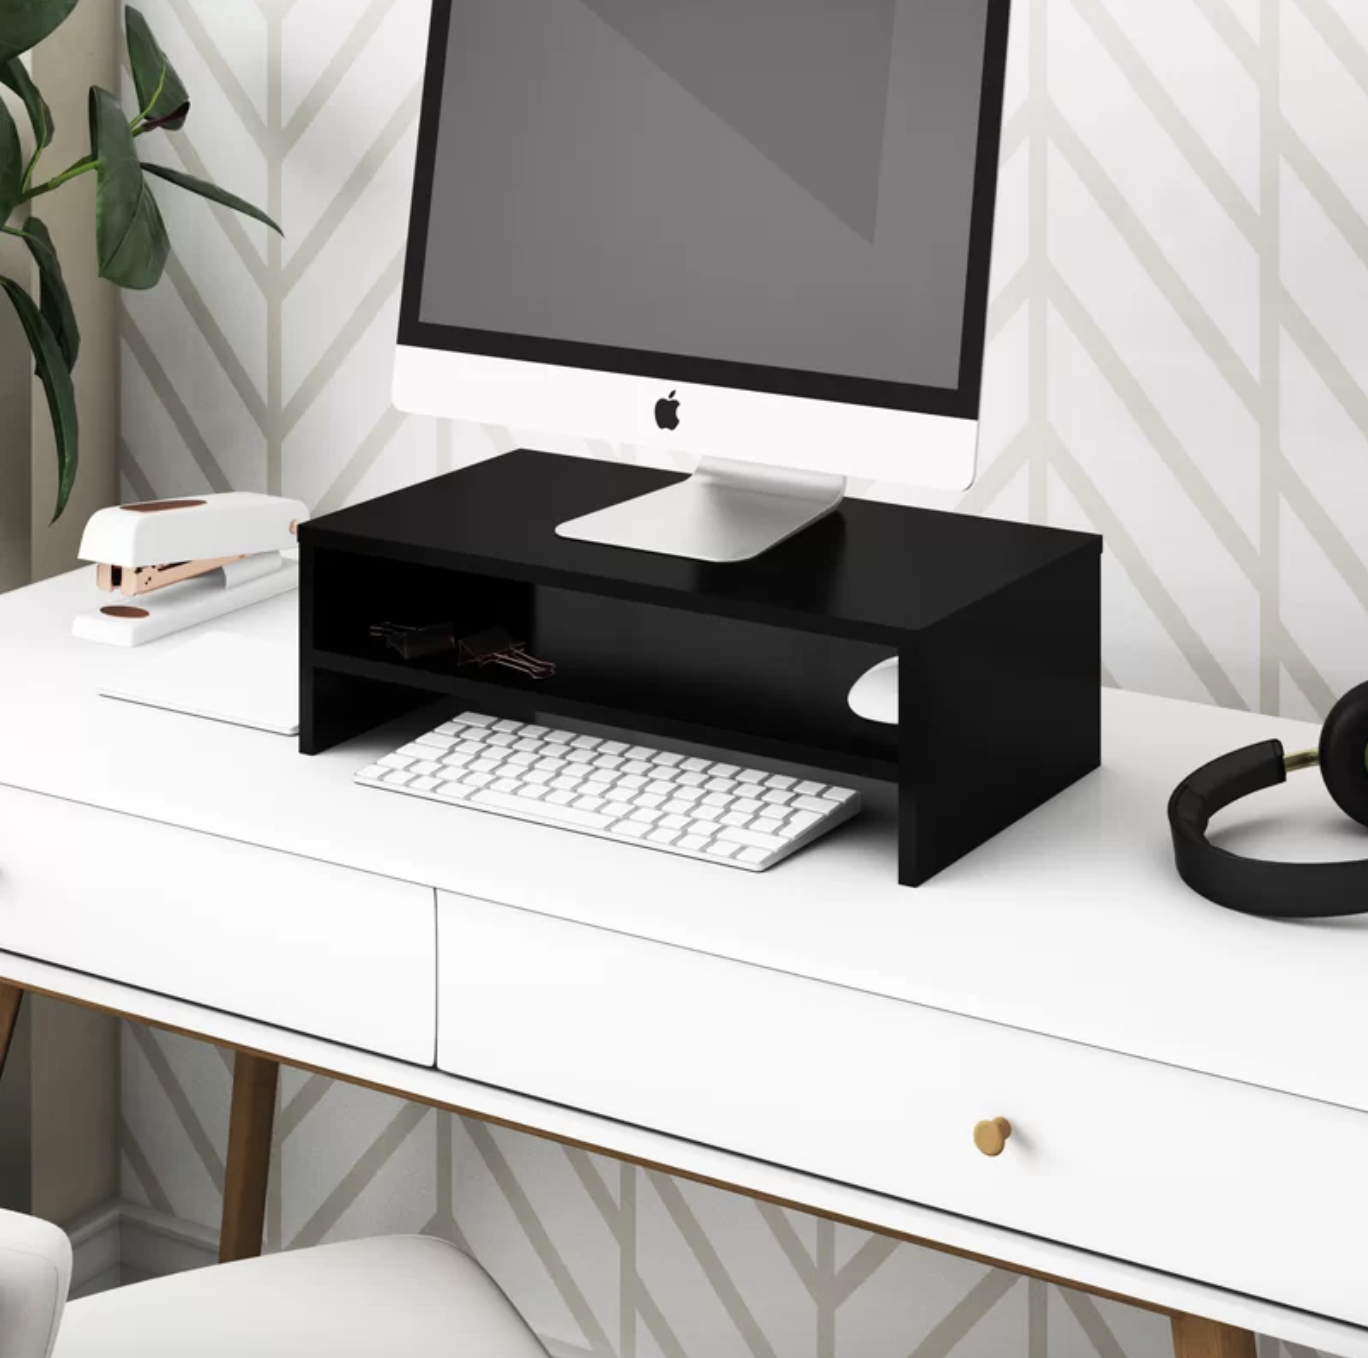 The monitor stand in black on a desk